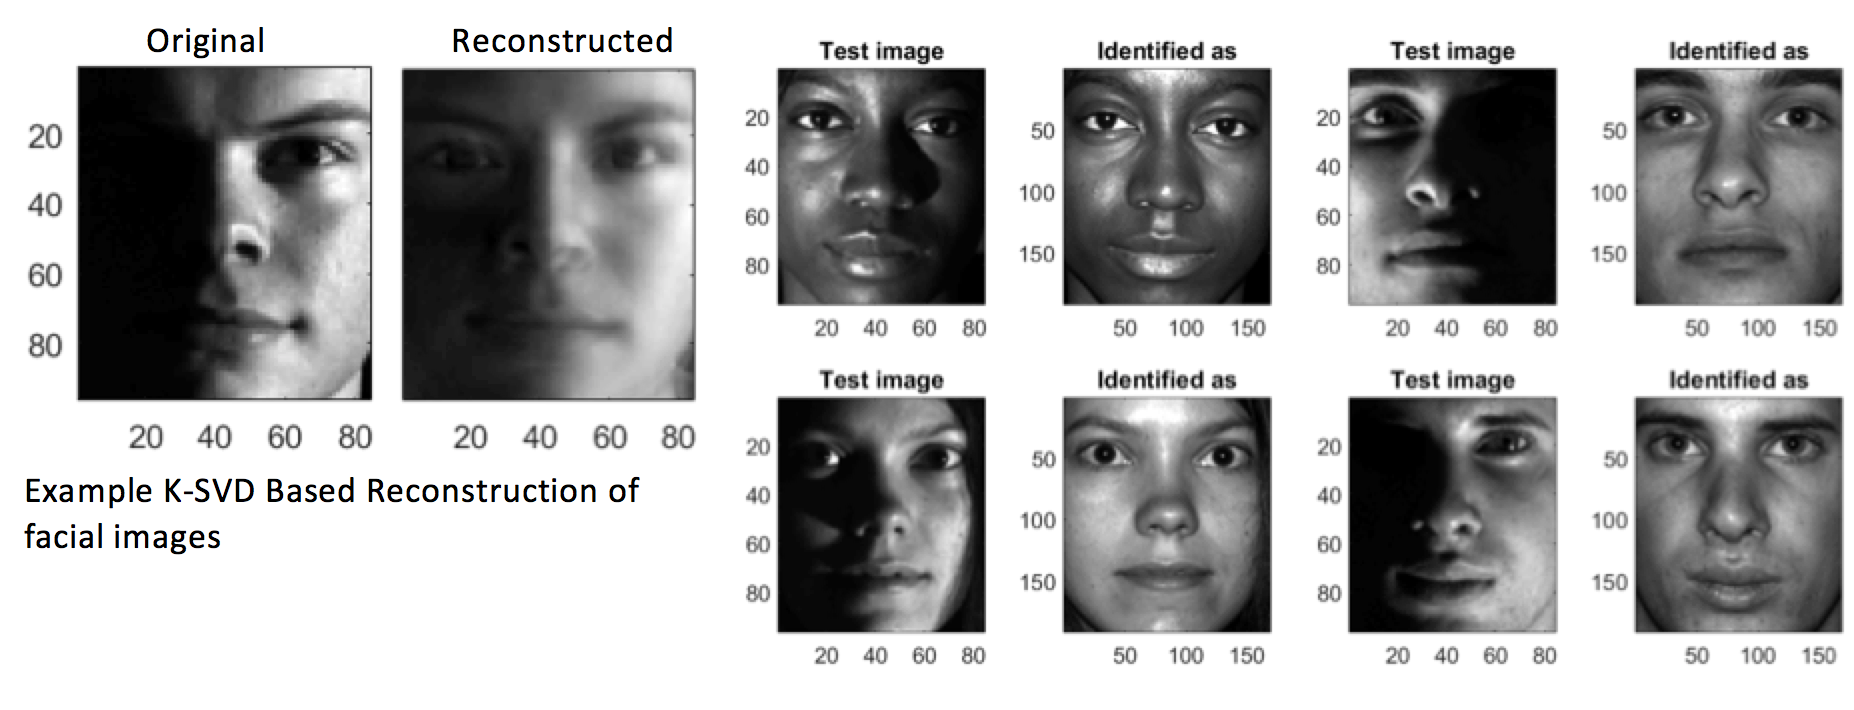 faces identified/reconstructed by a computer